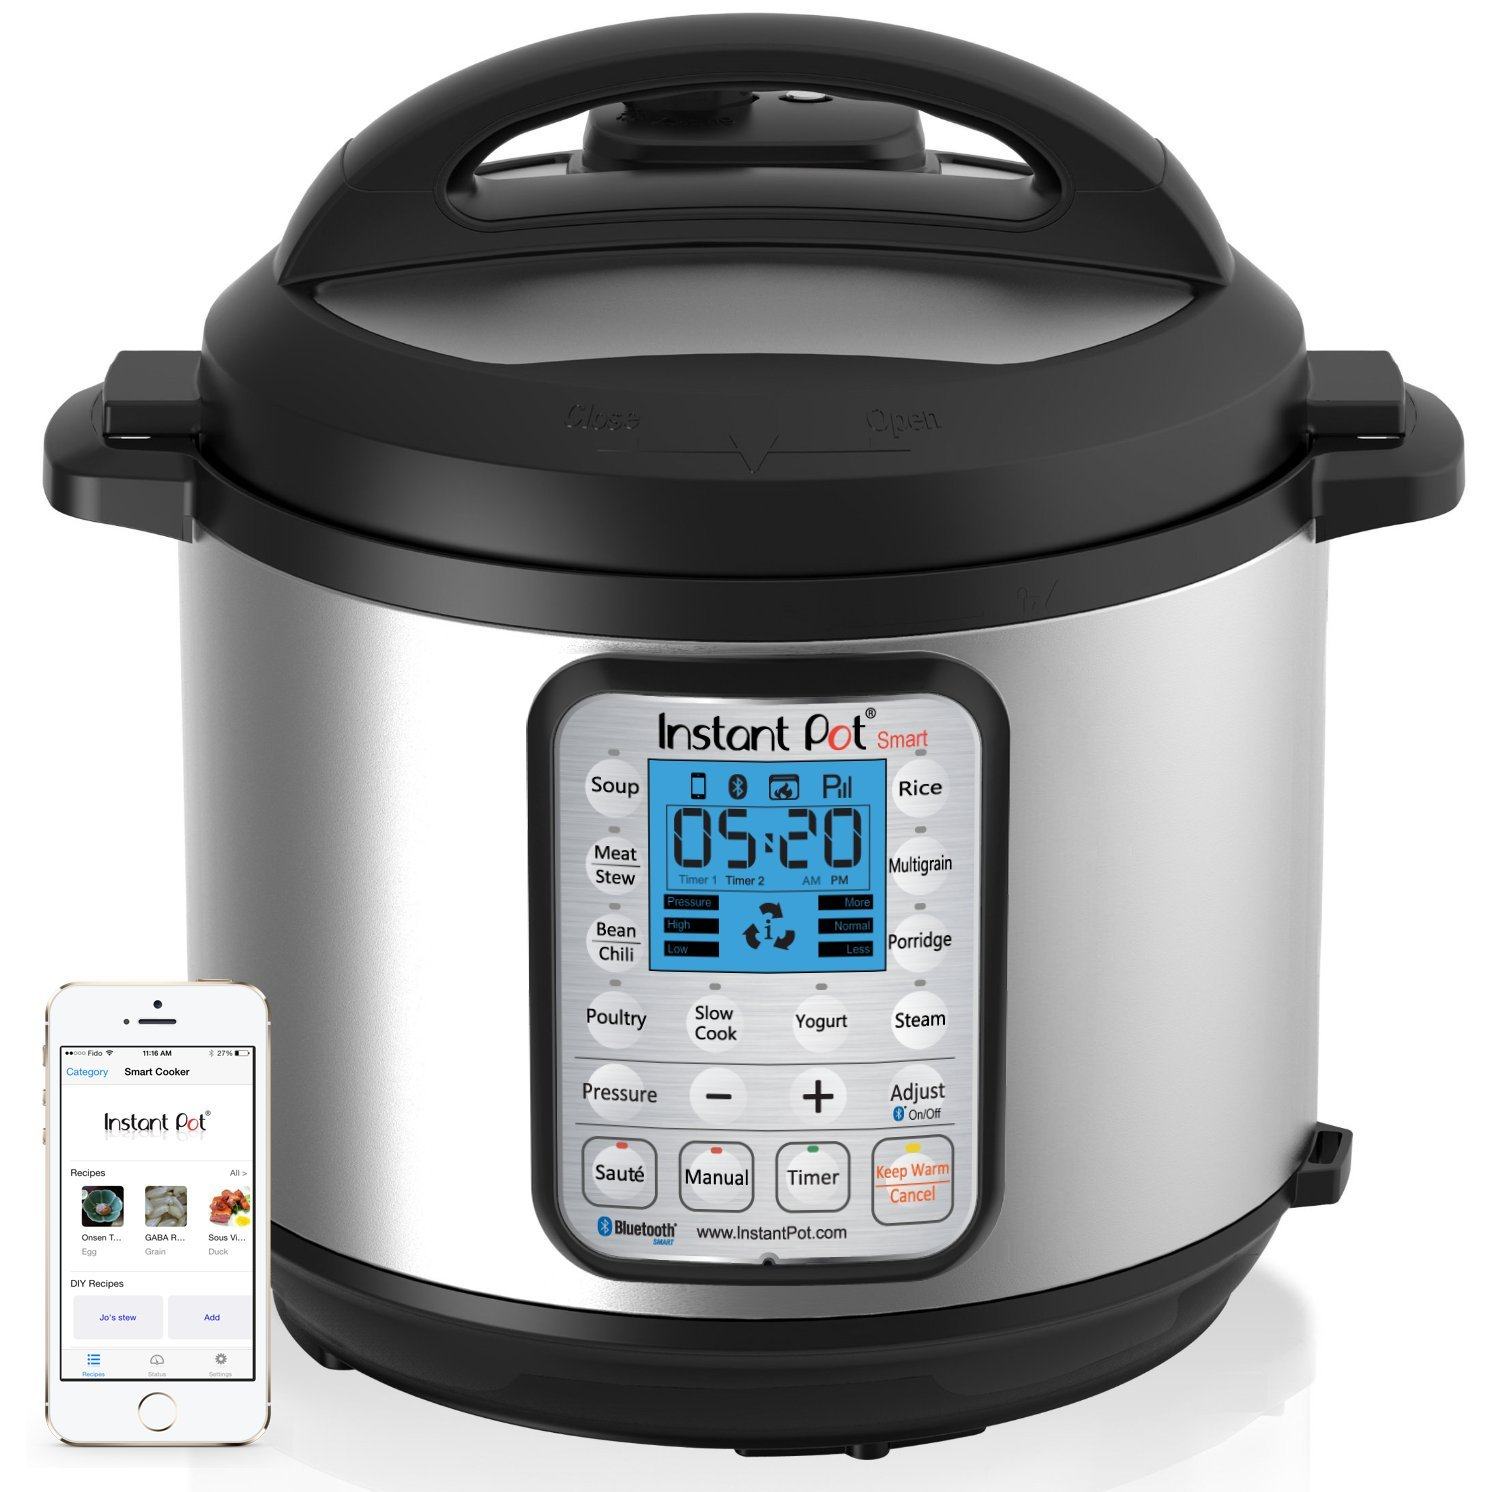 $151.95 (was $189.95) Instant Pot Smart Bluetooth Multi-Use Programmable Pressure Cooker, 6 Quart